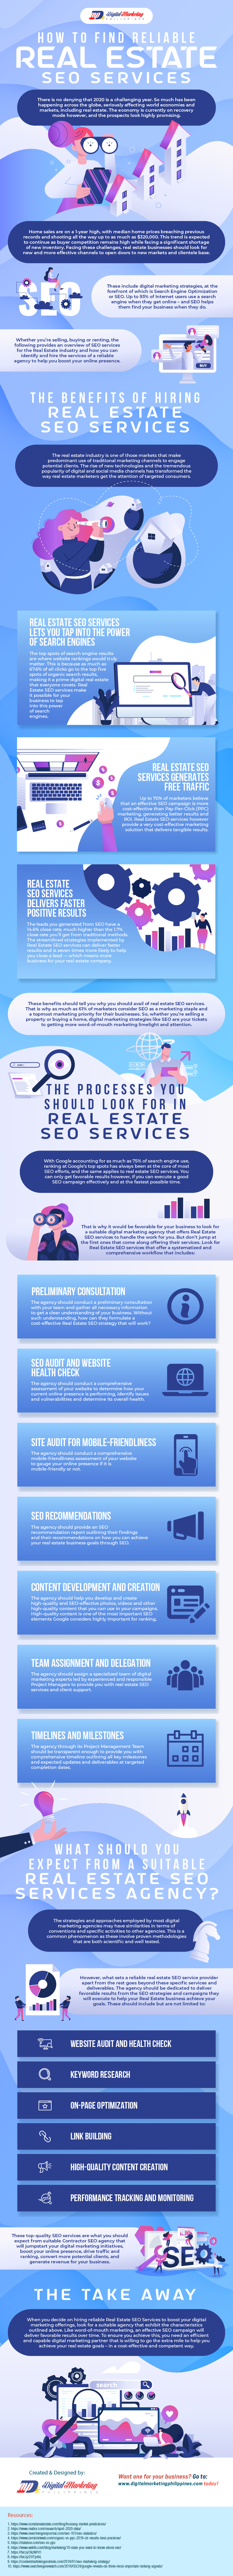 Real Estate SEO Services Infographic